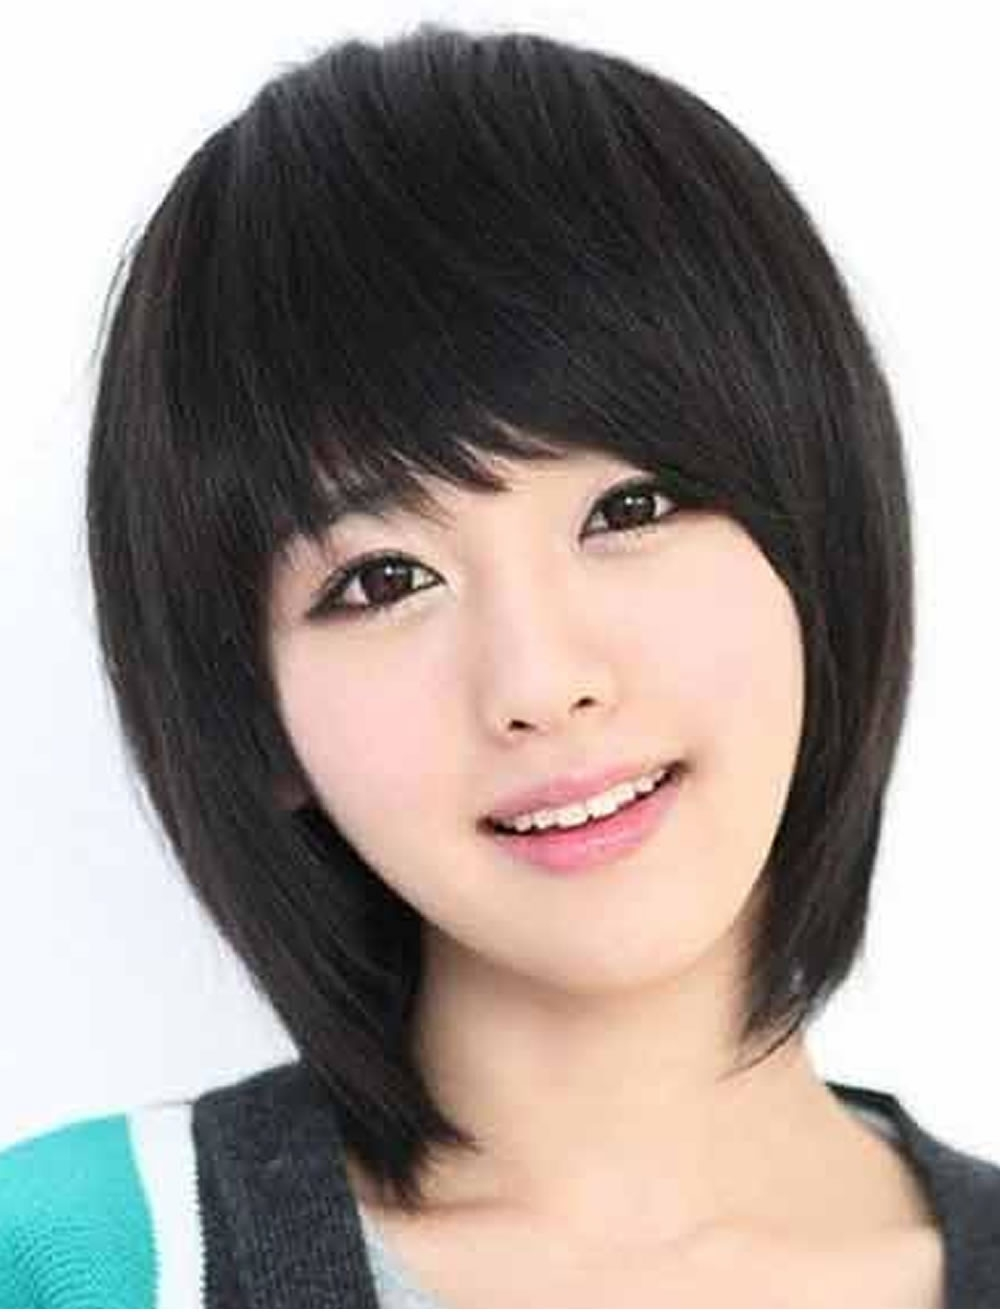 50 Glorious Short Hairstyles For Asian Women For Summer Days 2018 with regard to Asian Short Hairstyles Female 2017